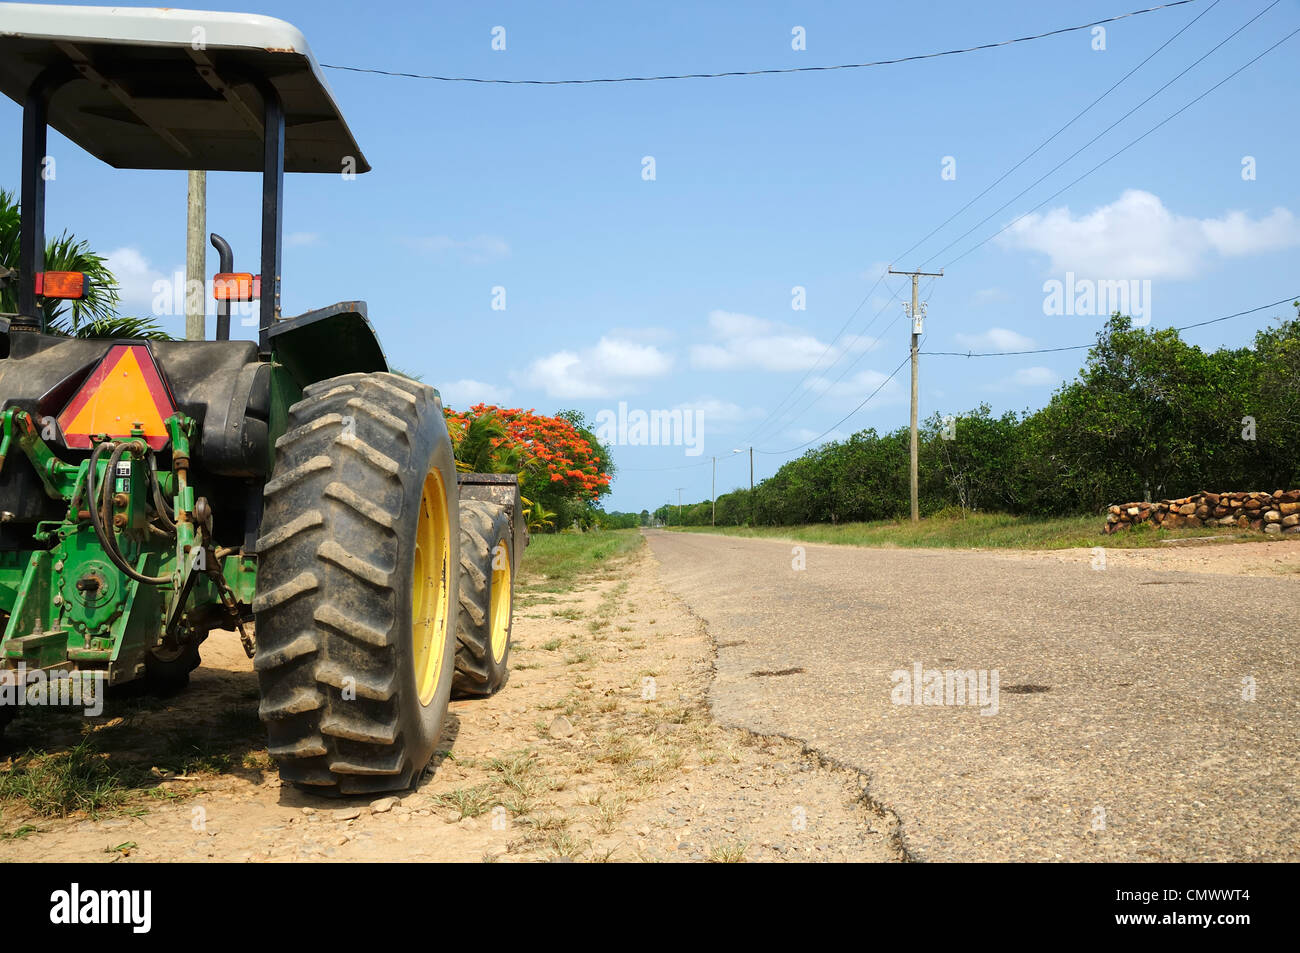 A tractor parked at the side of an empty road viewed from the rear. - Stock Image